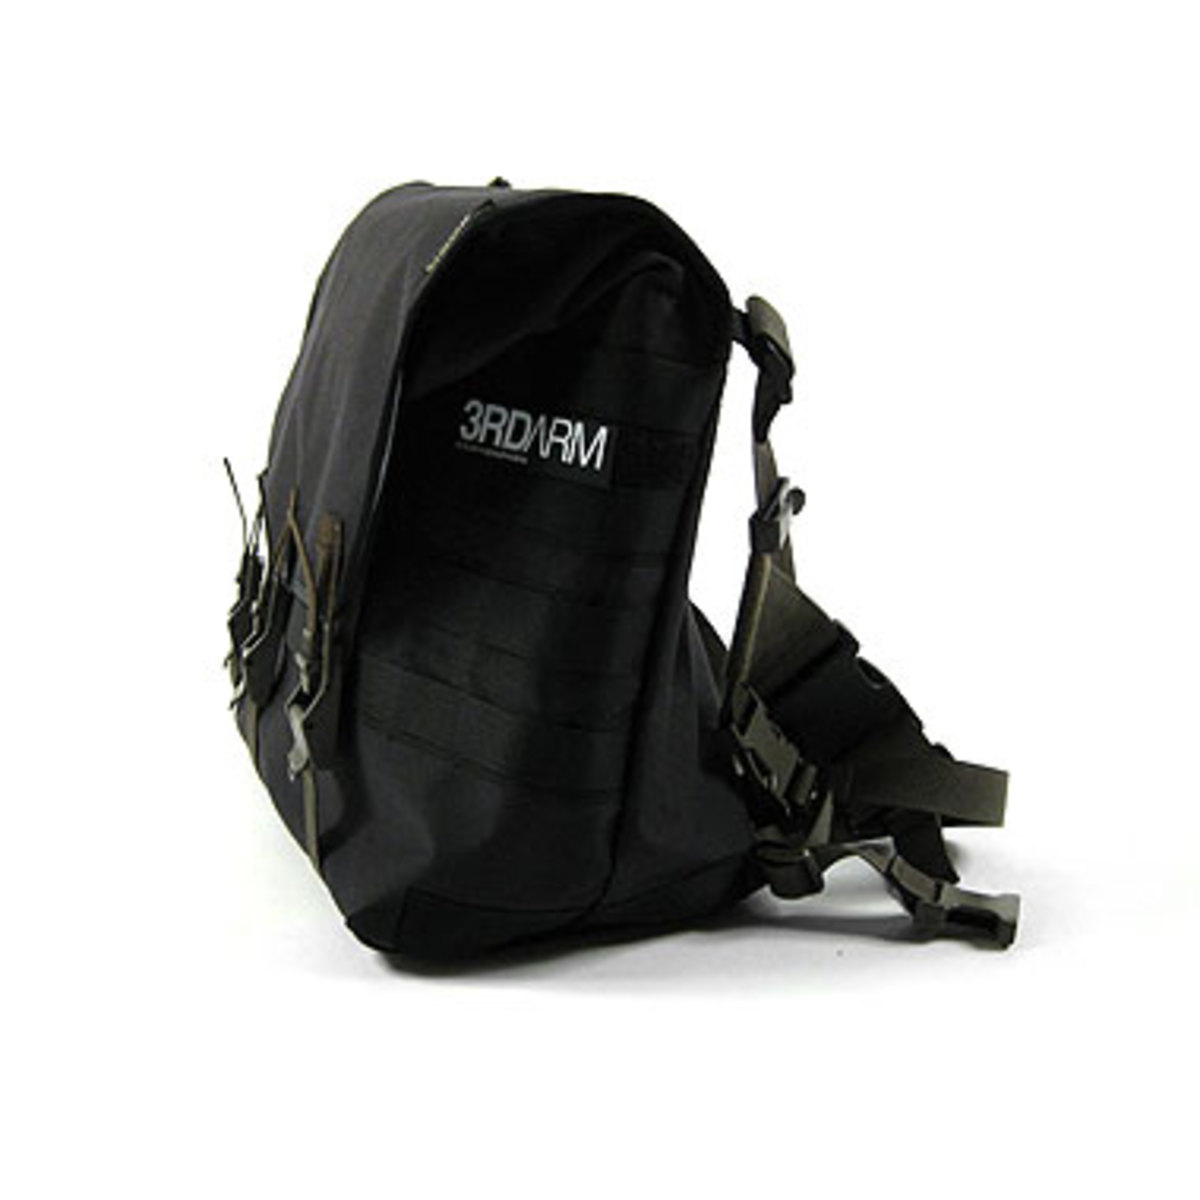 3a-5ts-tec-sys-messenger-bag-side